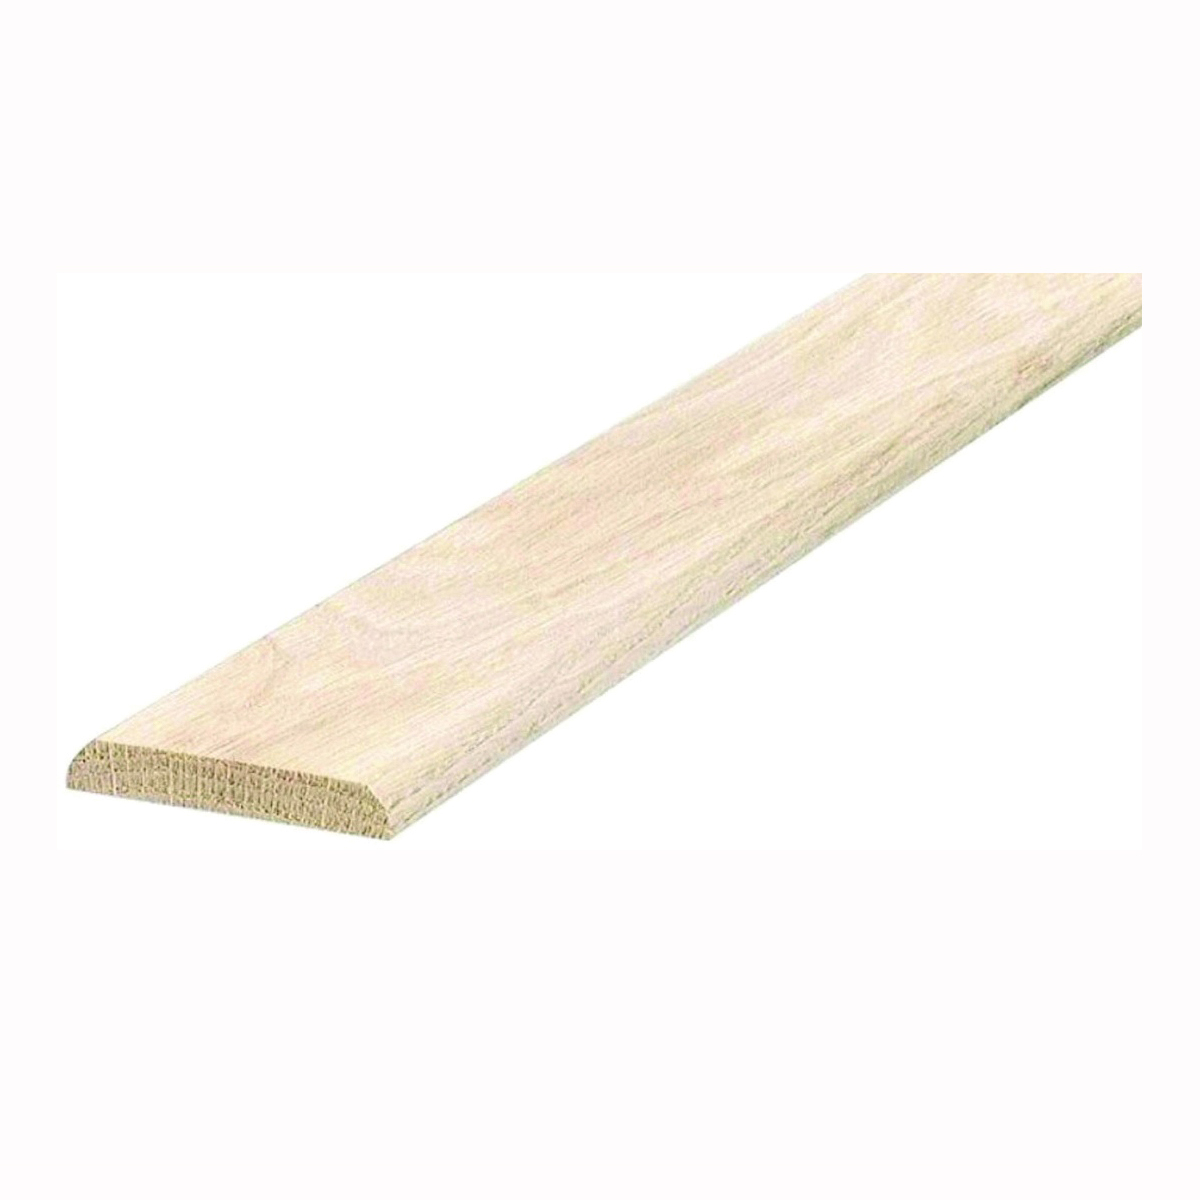 Picture of M-D 11908 Threshold, 36 in L, 2-1/2 in W, Hardwood, Unfinished